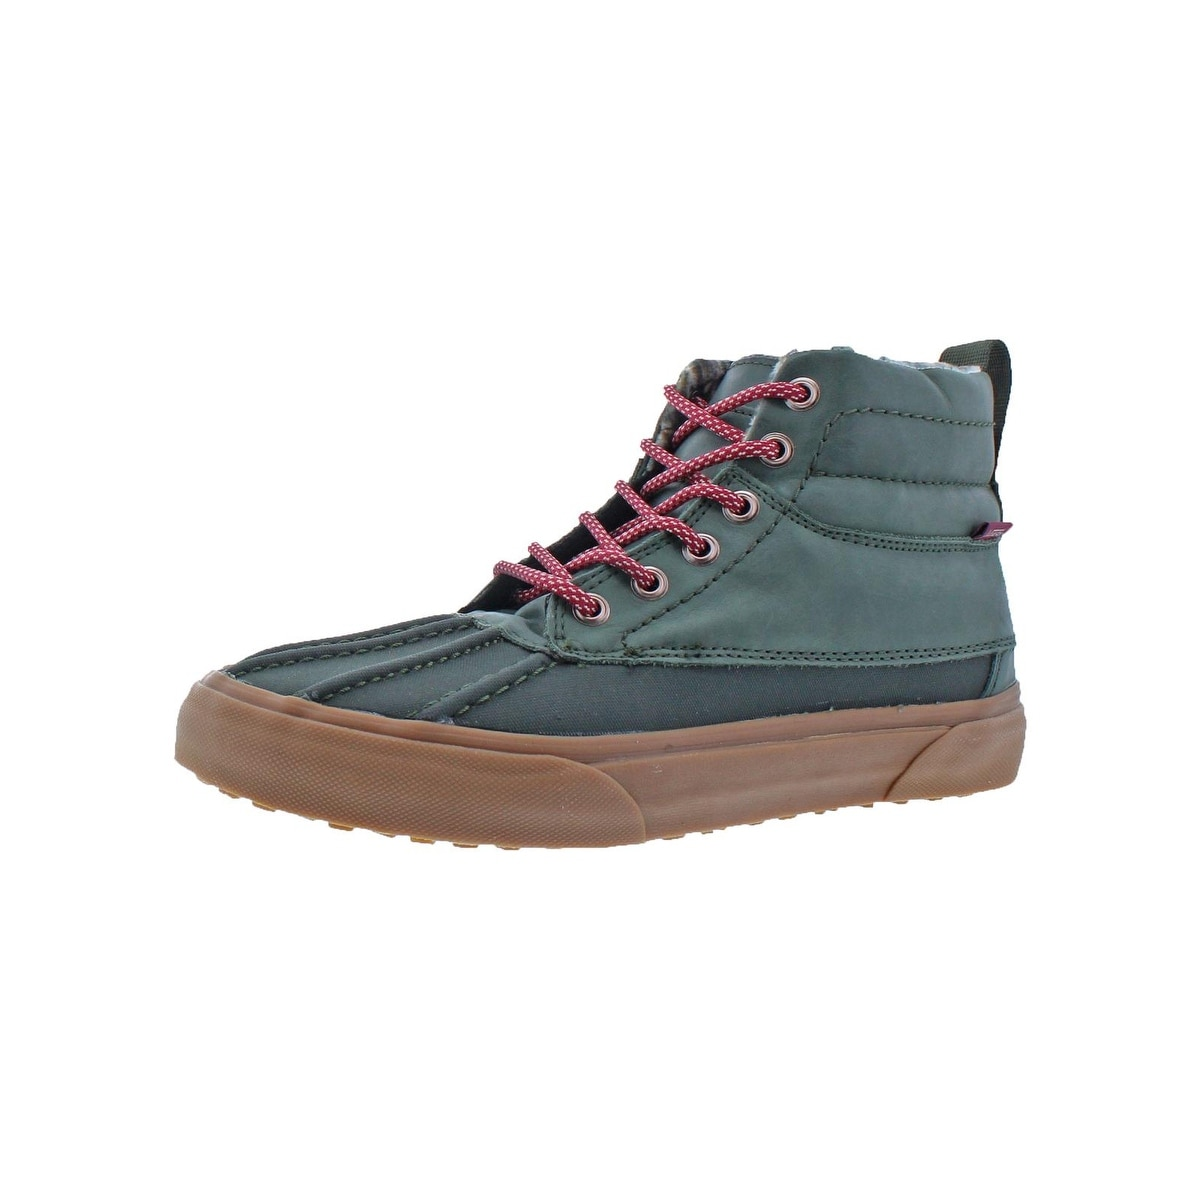 4275834a06afa0 Shop Vans Mens SK8-HI Del Pato MTE Skate Shoes Leather High-Top - Free  Shipping On Orders Over  45 - Overstock - 22119717